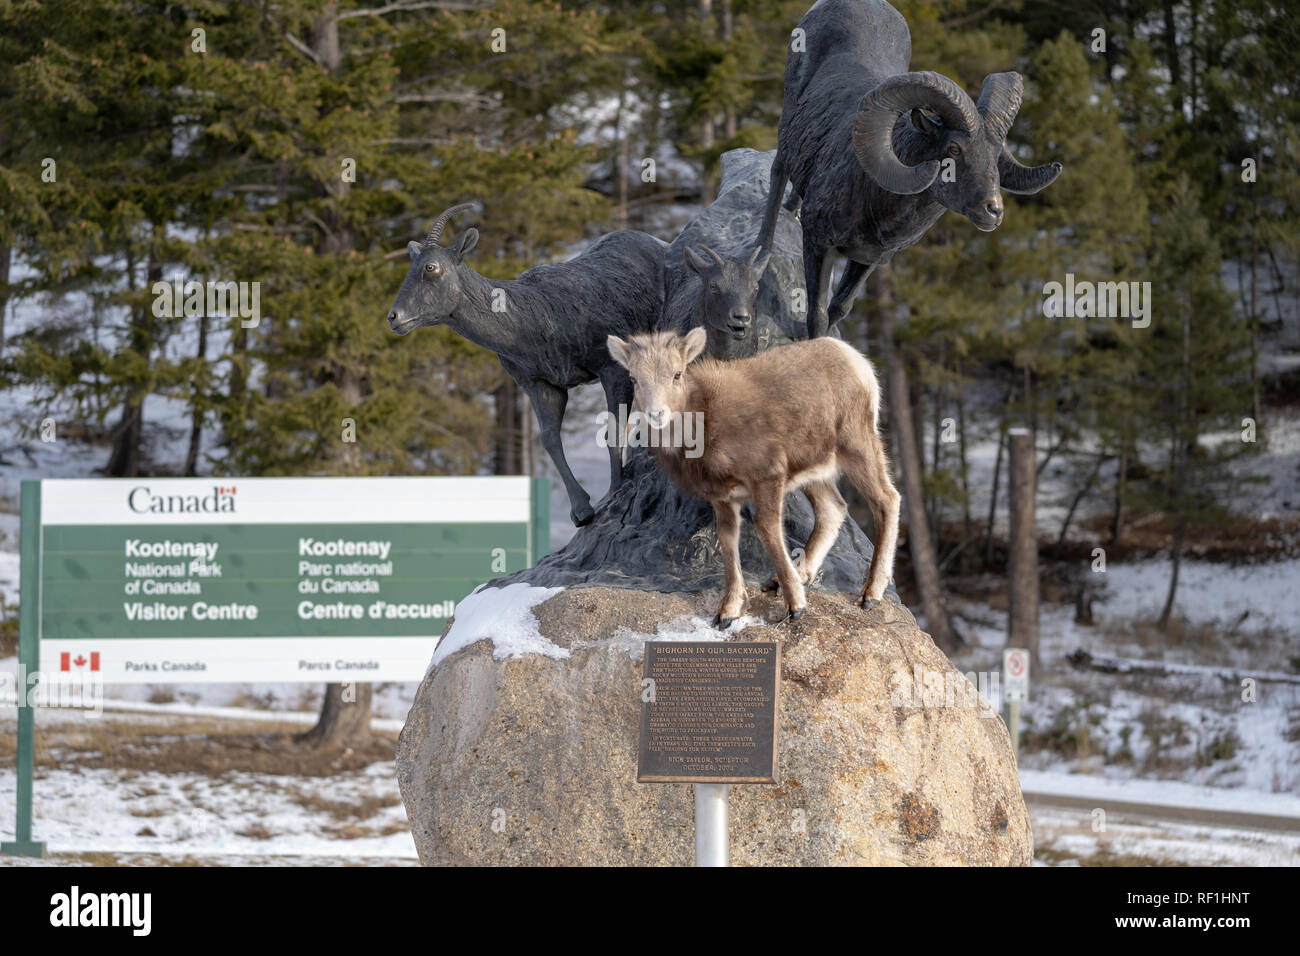 Radium Hot Springs, British Columbia, Canada - Janurary 20, 2019: Bighorn sheep baby ewe stands on top of a statue of Bighorn sheep, confused, thinkin - Stock Image